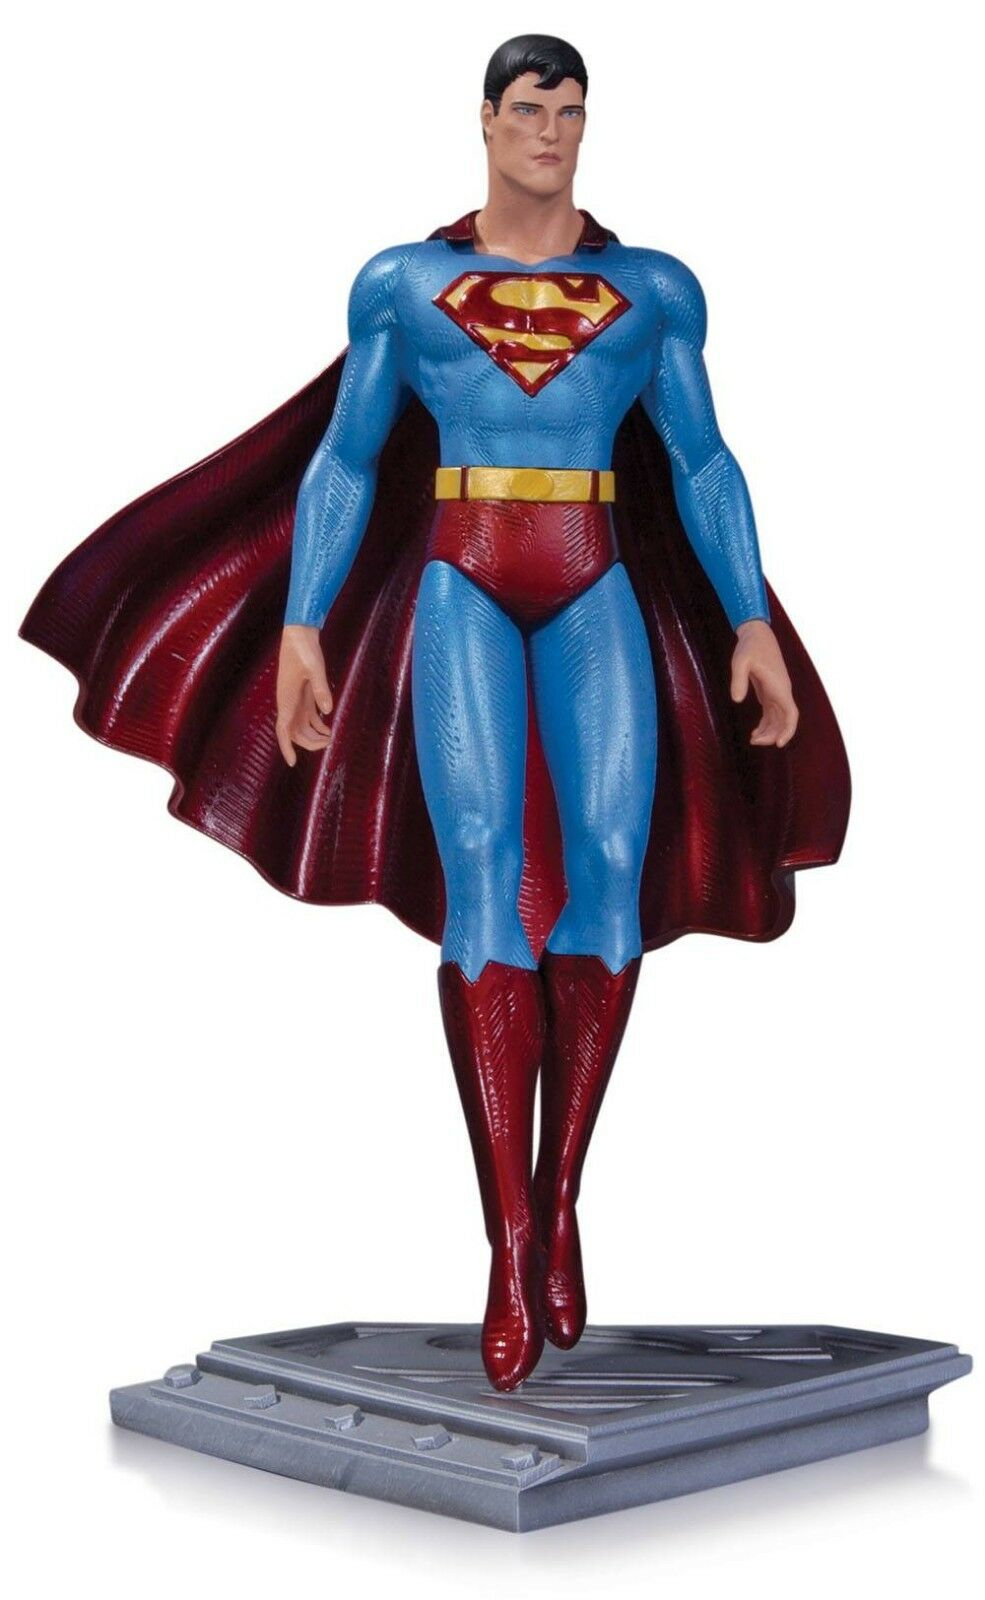 Superman The Man Of Steel statuette Moebius - 20 cm - DC Collectibles